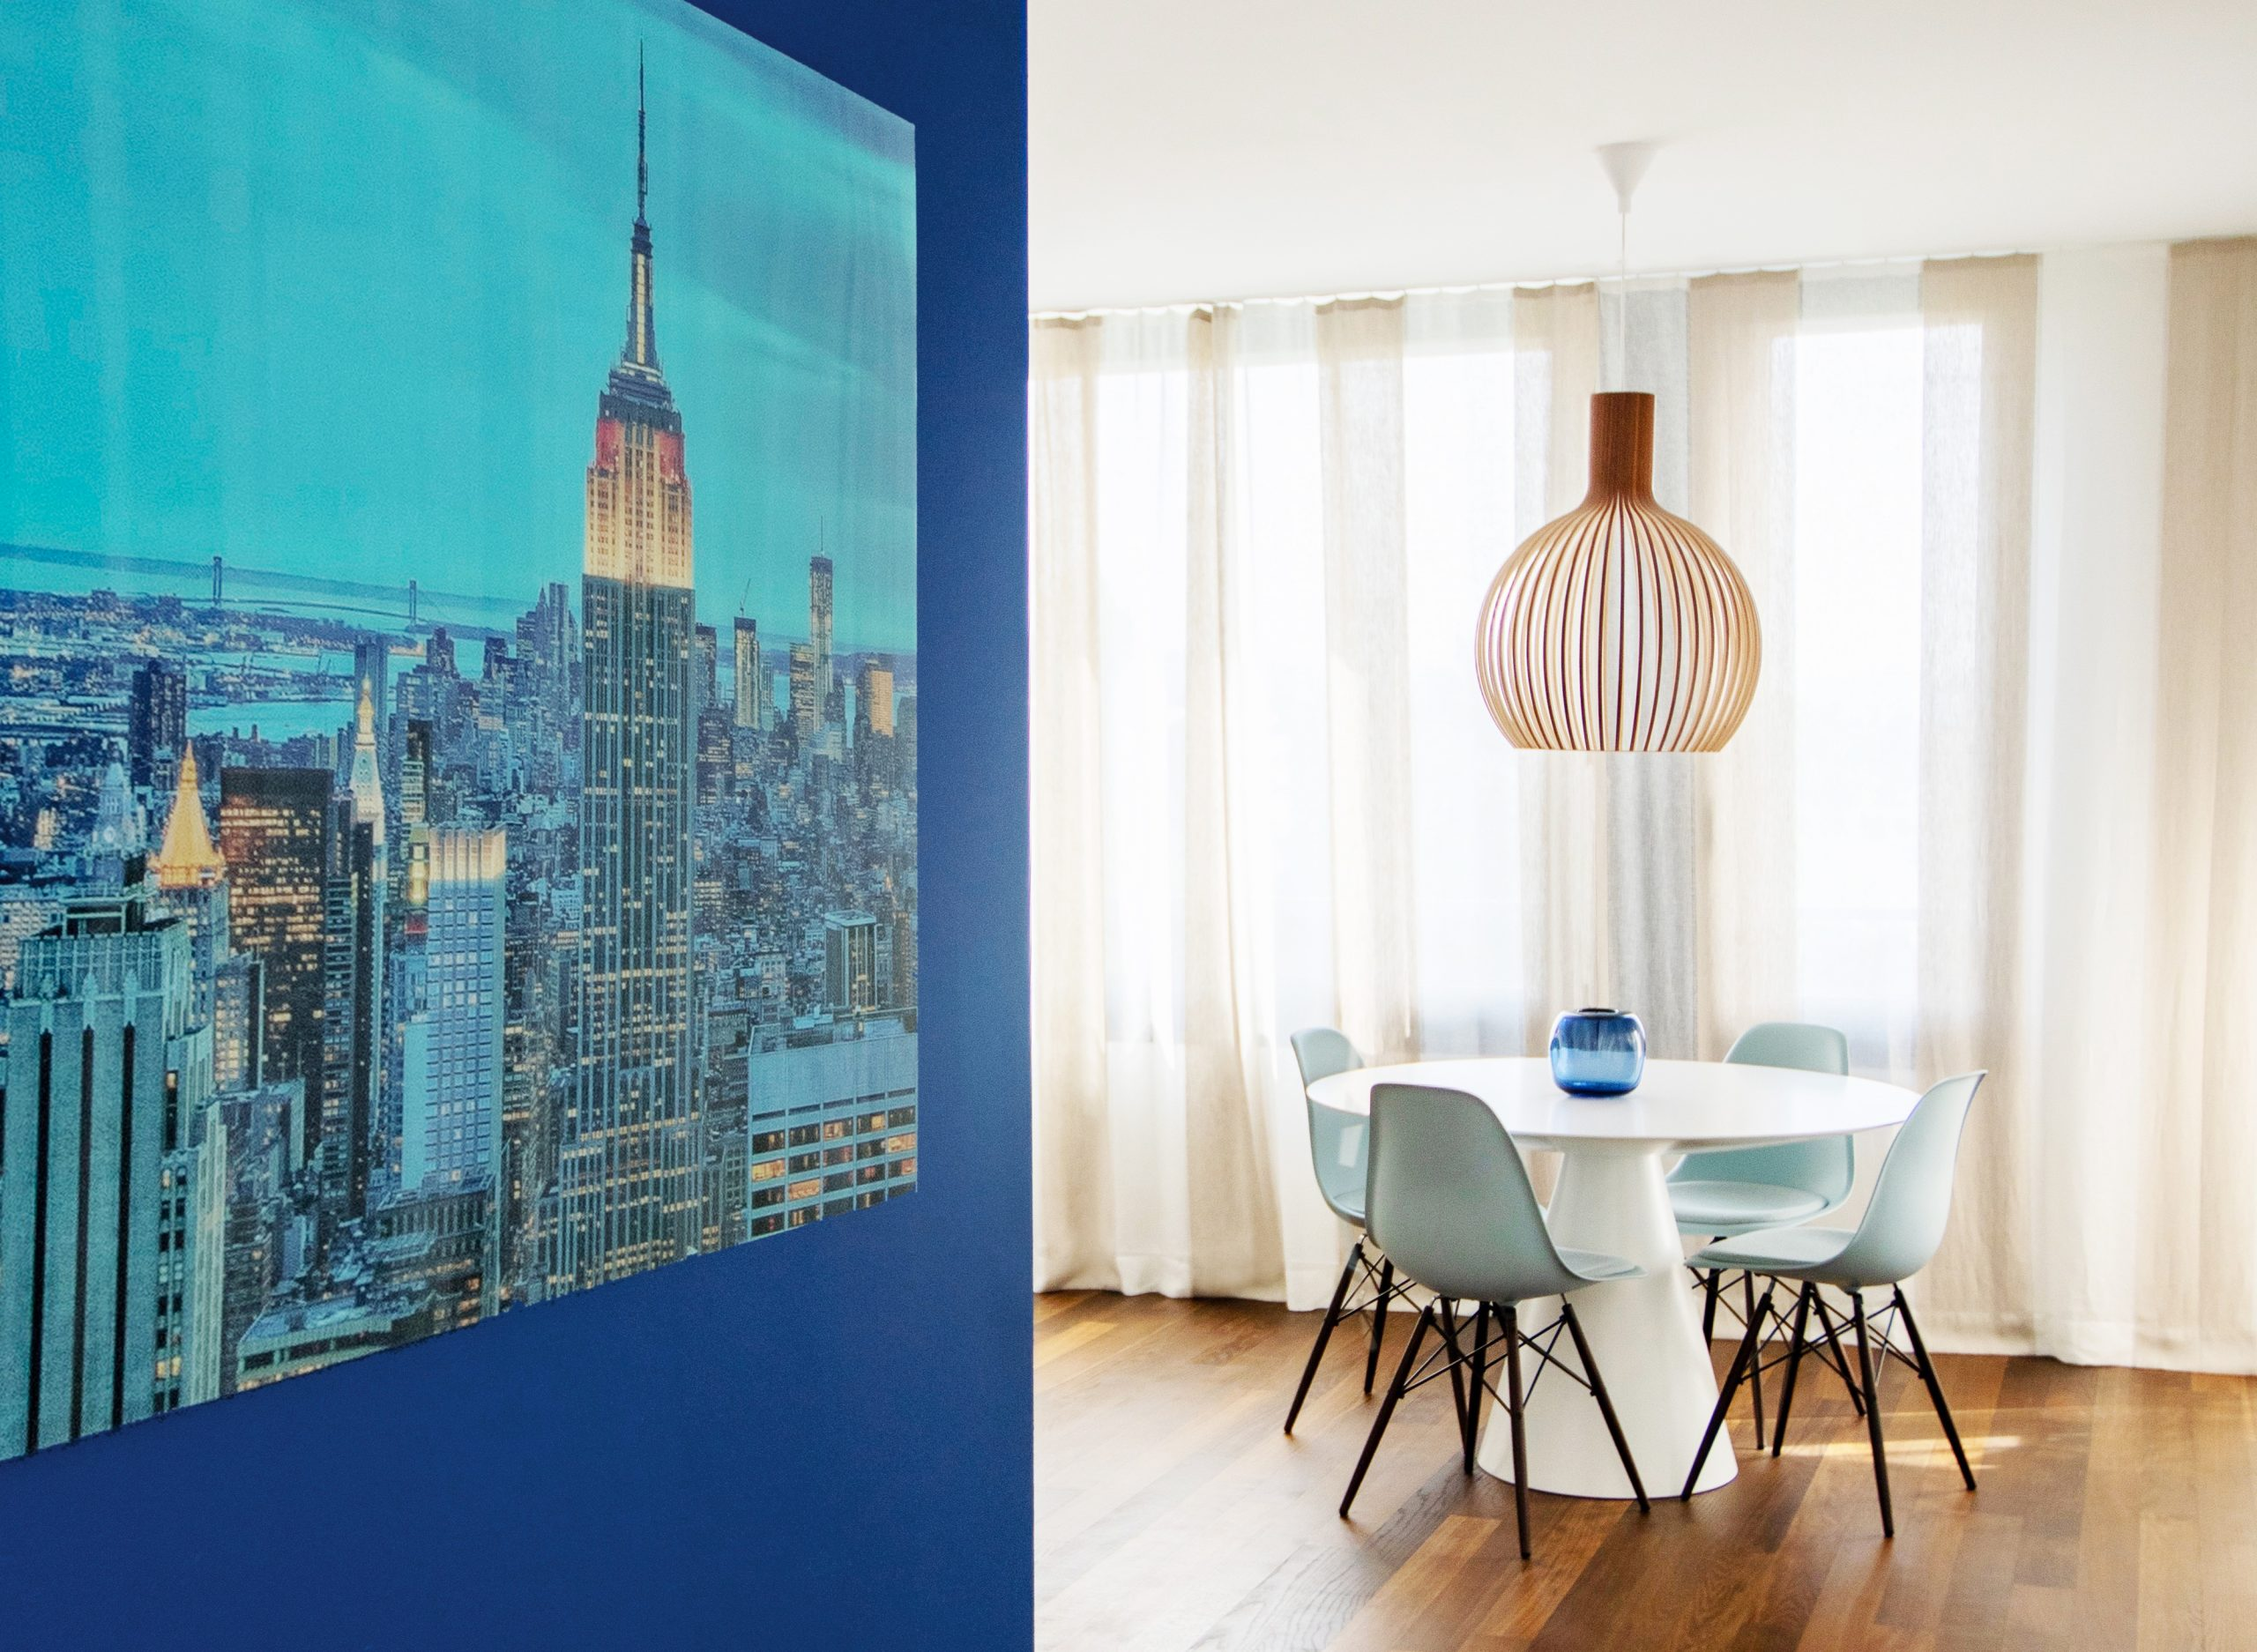 minimalistic interior with blue feature wall